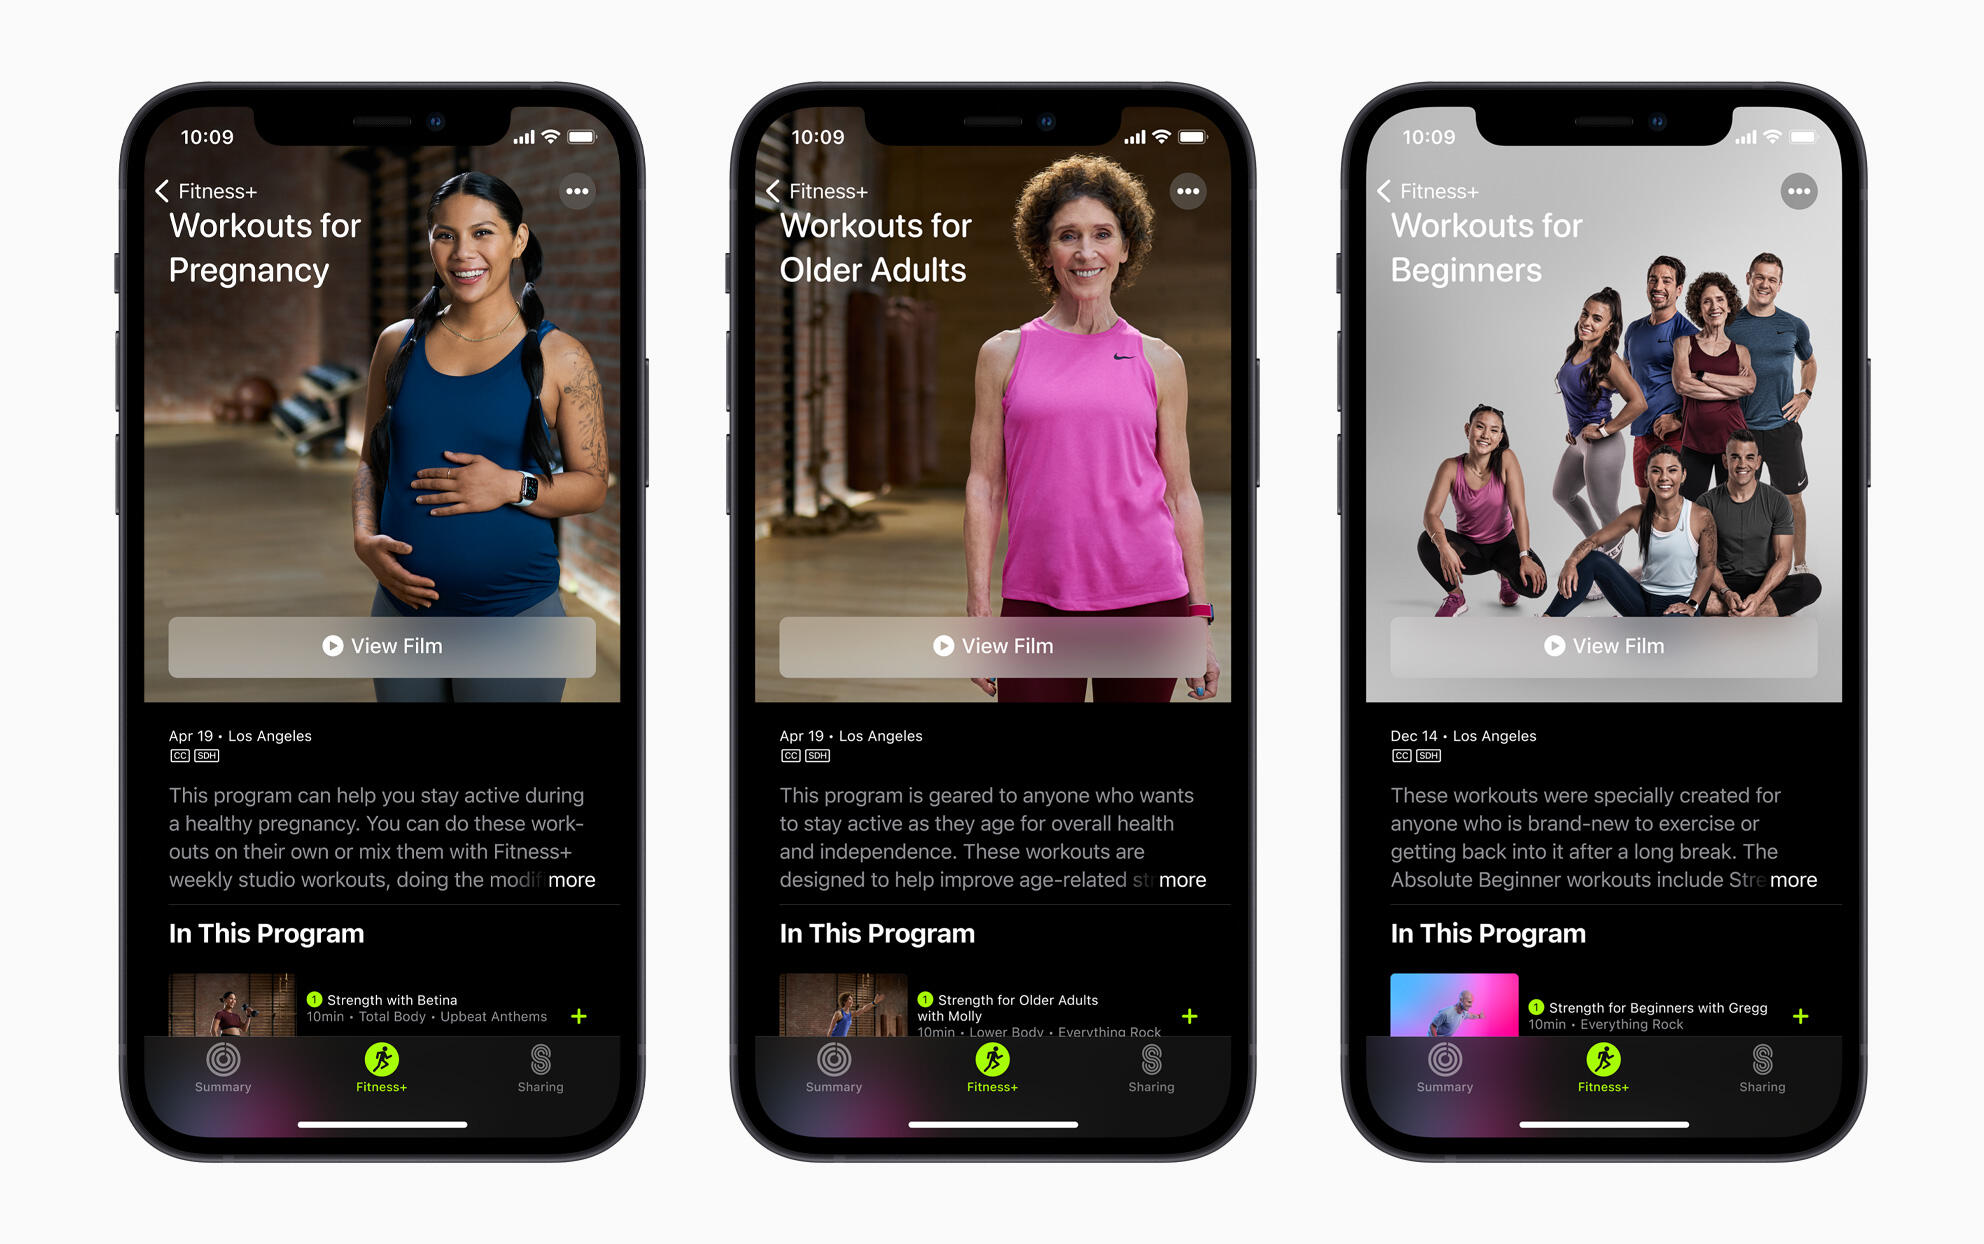 Apple Fitness Plus Workouts for pregnancy, older adults and beginners